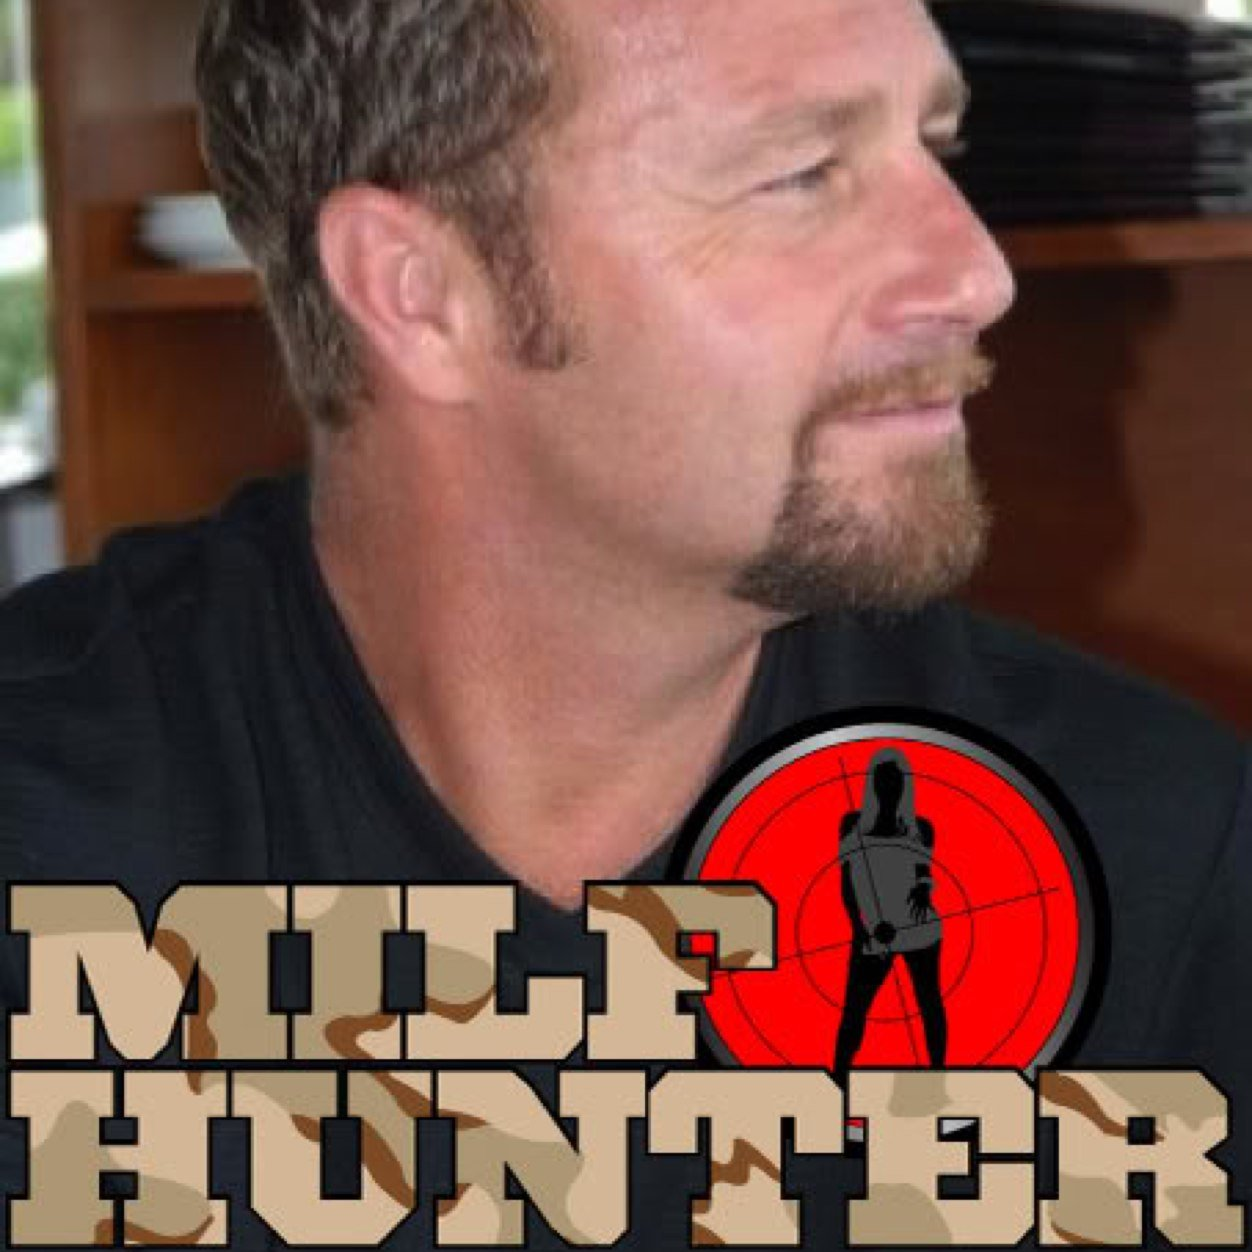 Who is the milf hunter